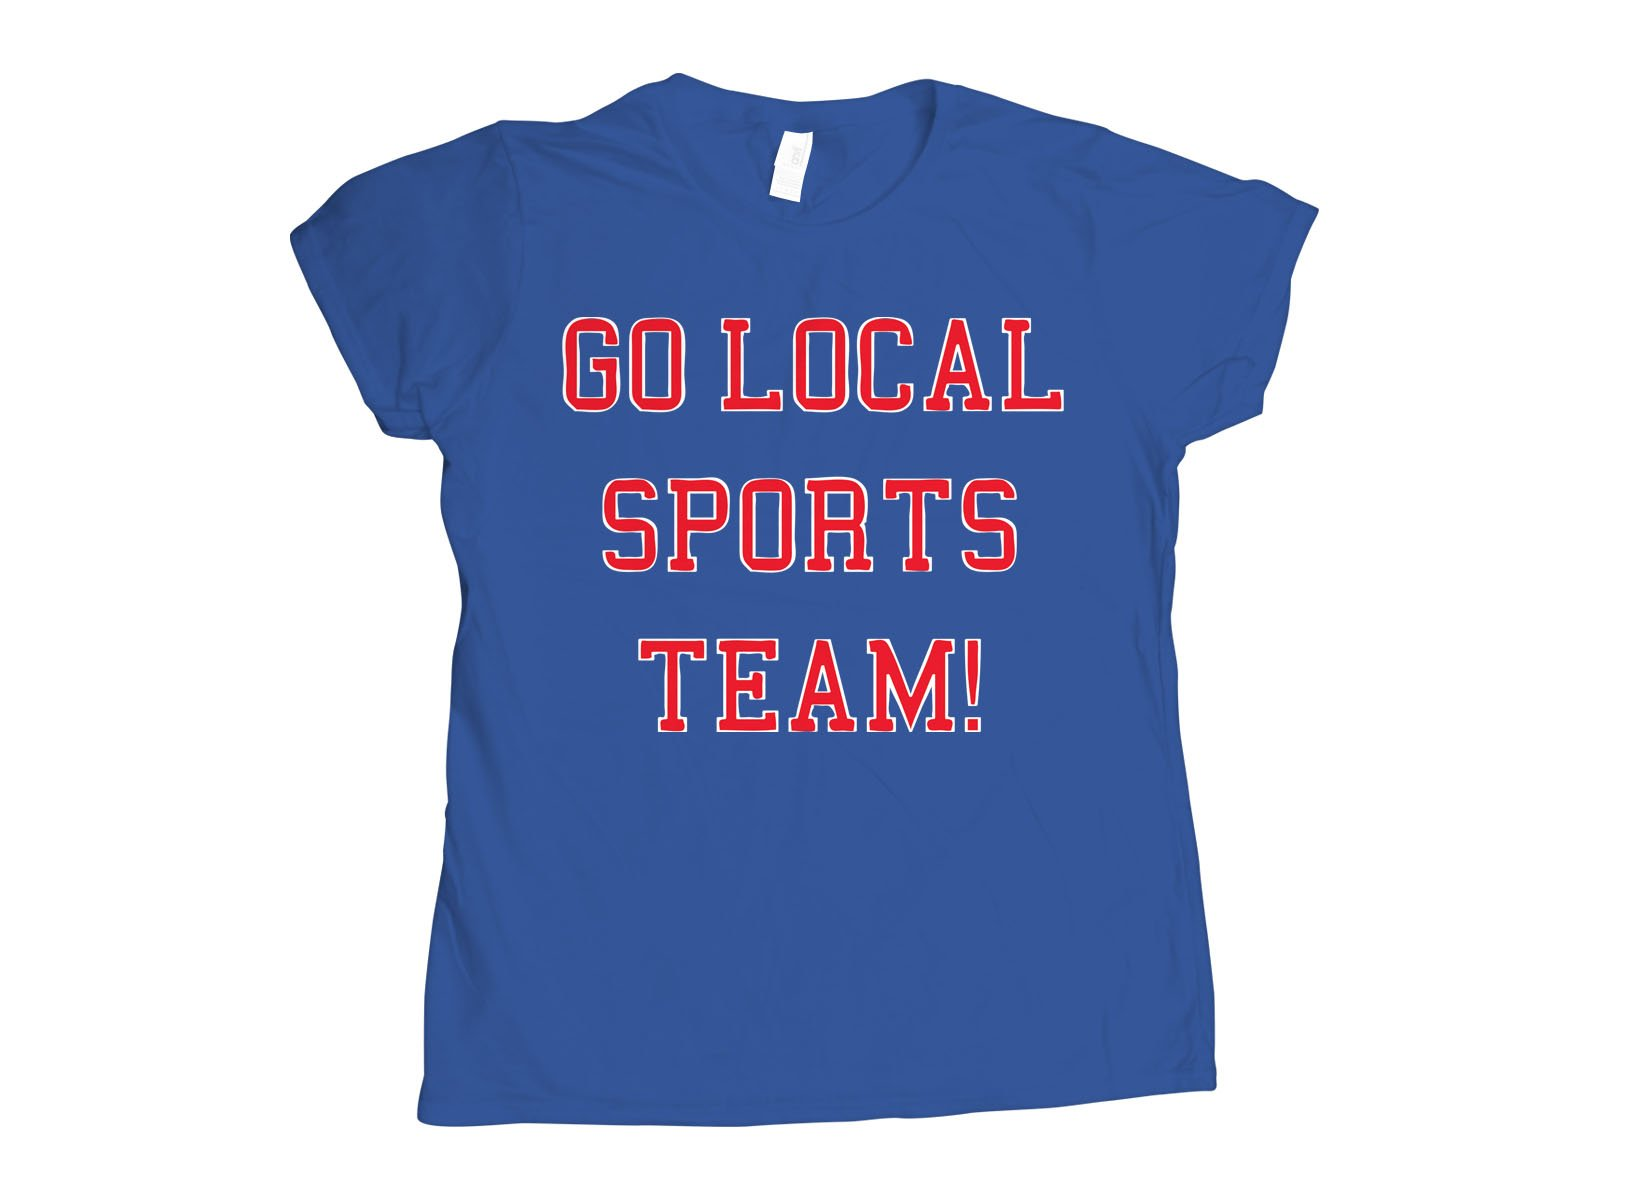 Go Local Sports Team! on Womens T-Shirt